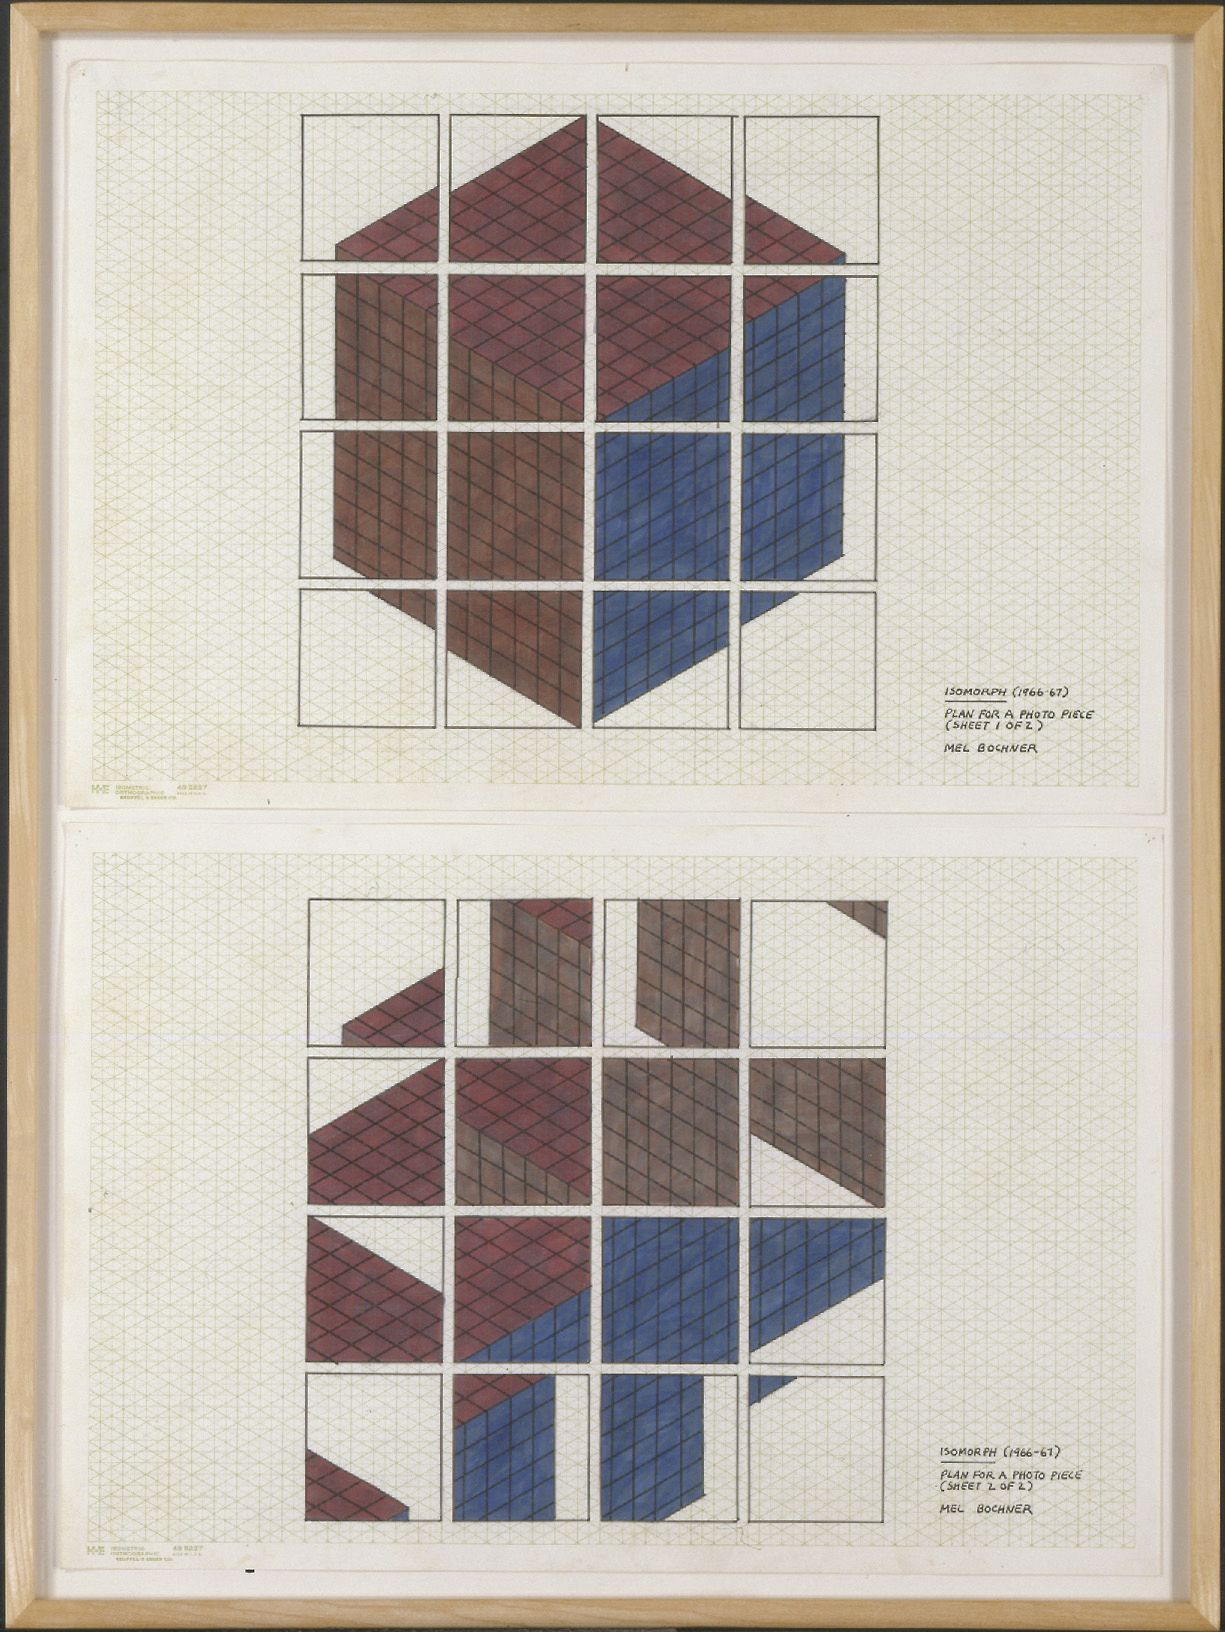 Mel Bochner,Isomorph (Plan for a Photo Piece), 1967. Ink and felt tip on graph paper, two sheets: 13 x 19 inches, each.